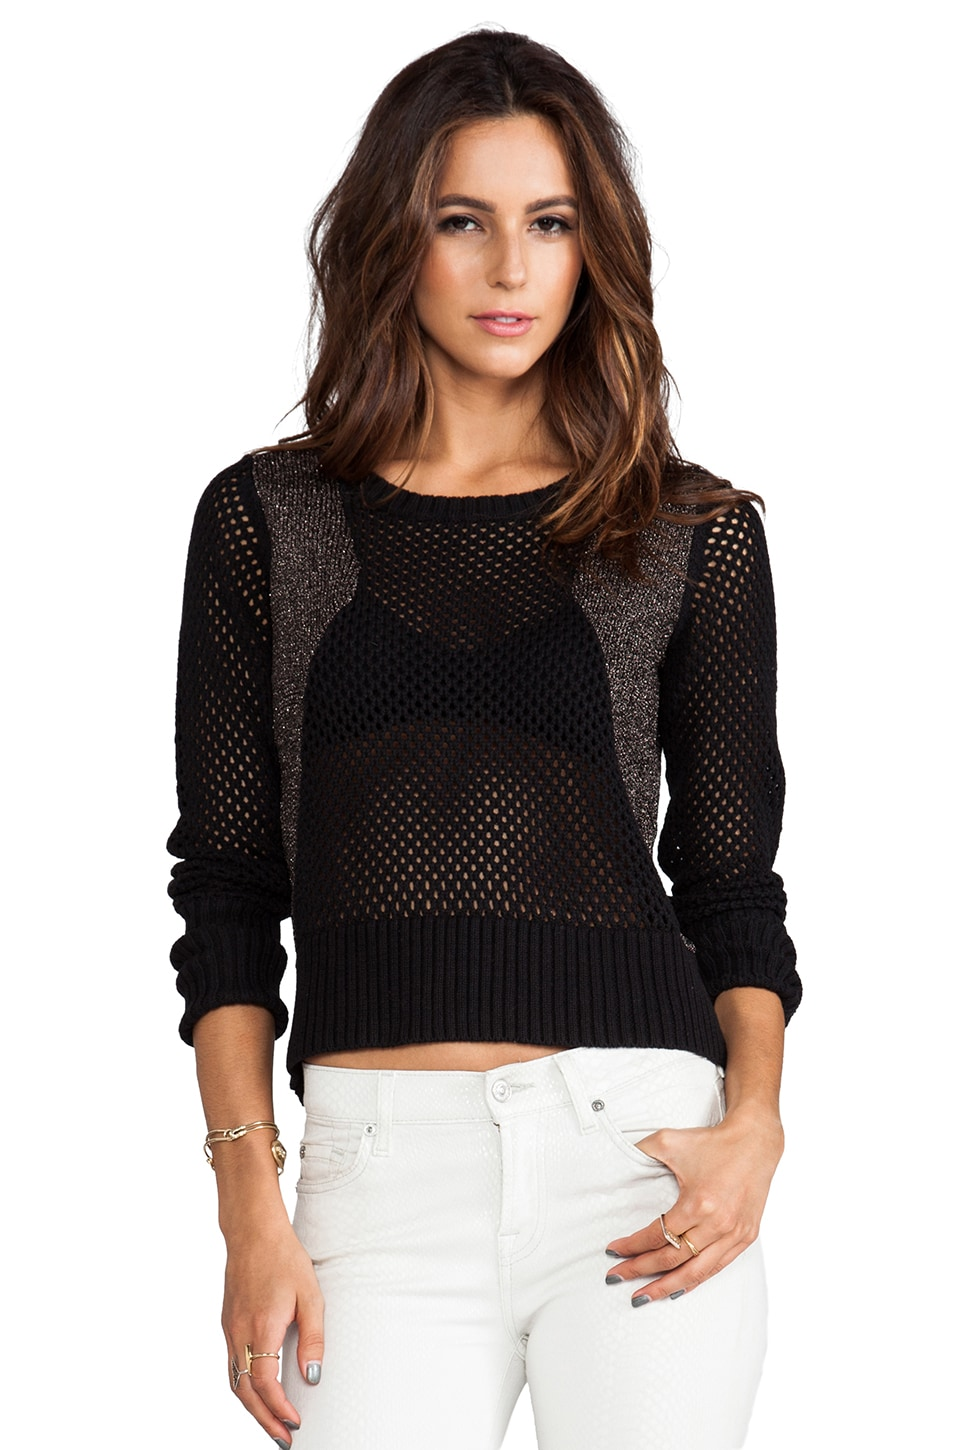 Suboo The Eveleigh Sweater in Black